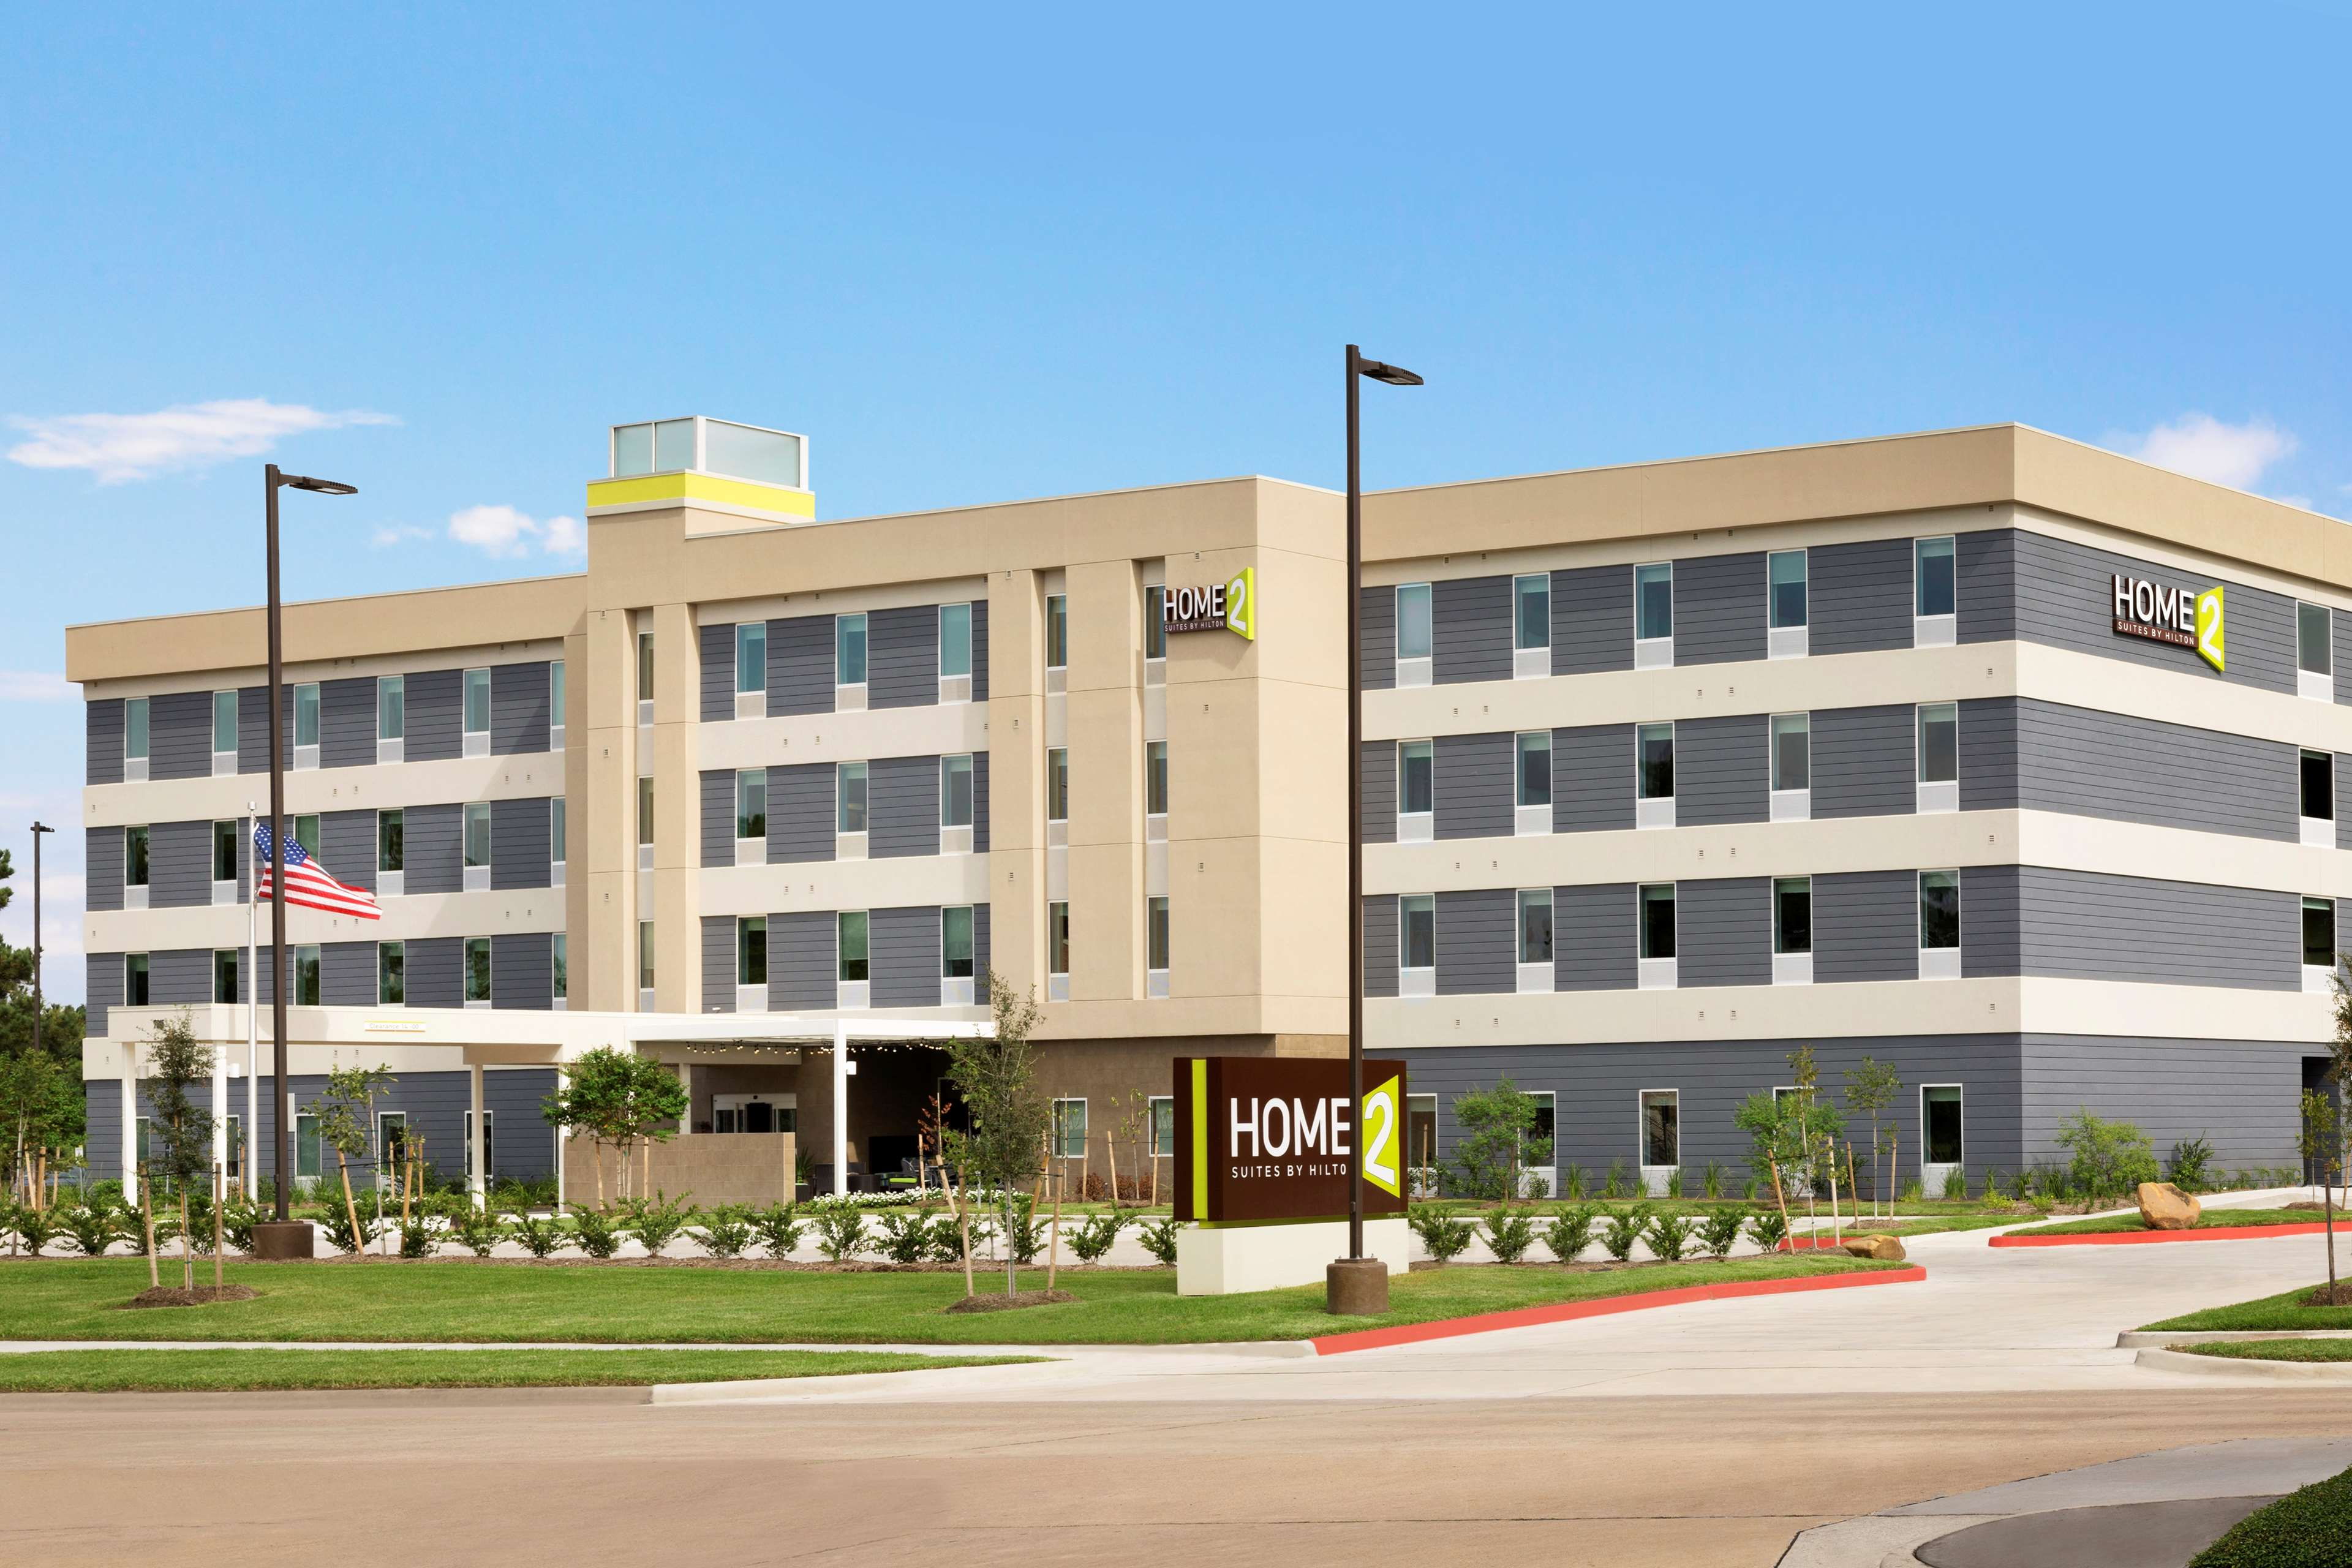 Home2 Suites by Hilton Houston Willowbrook image 0